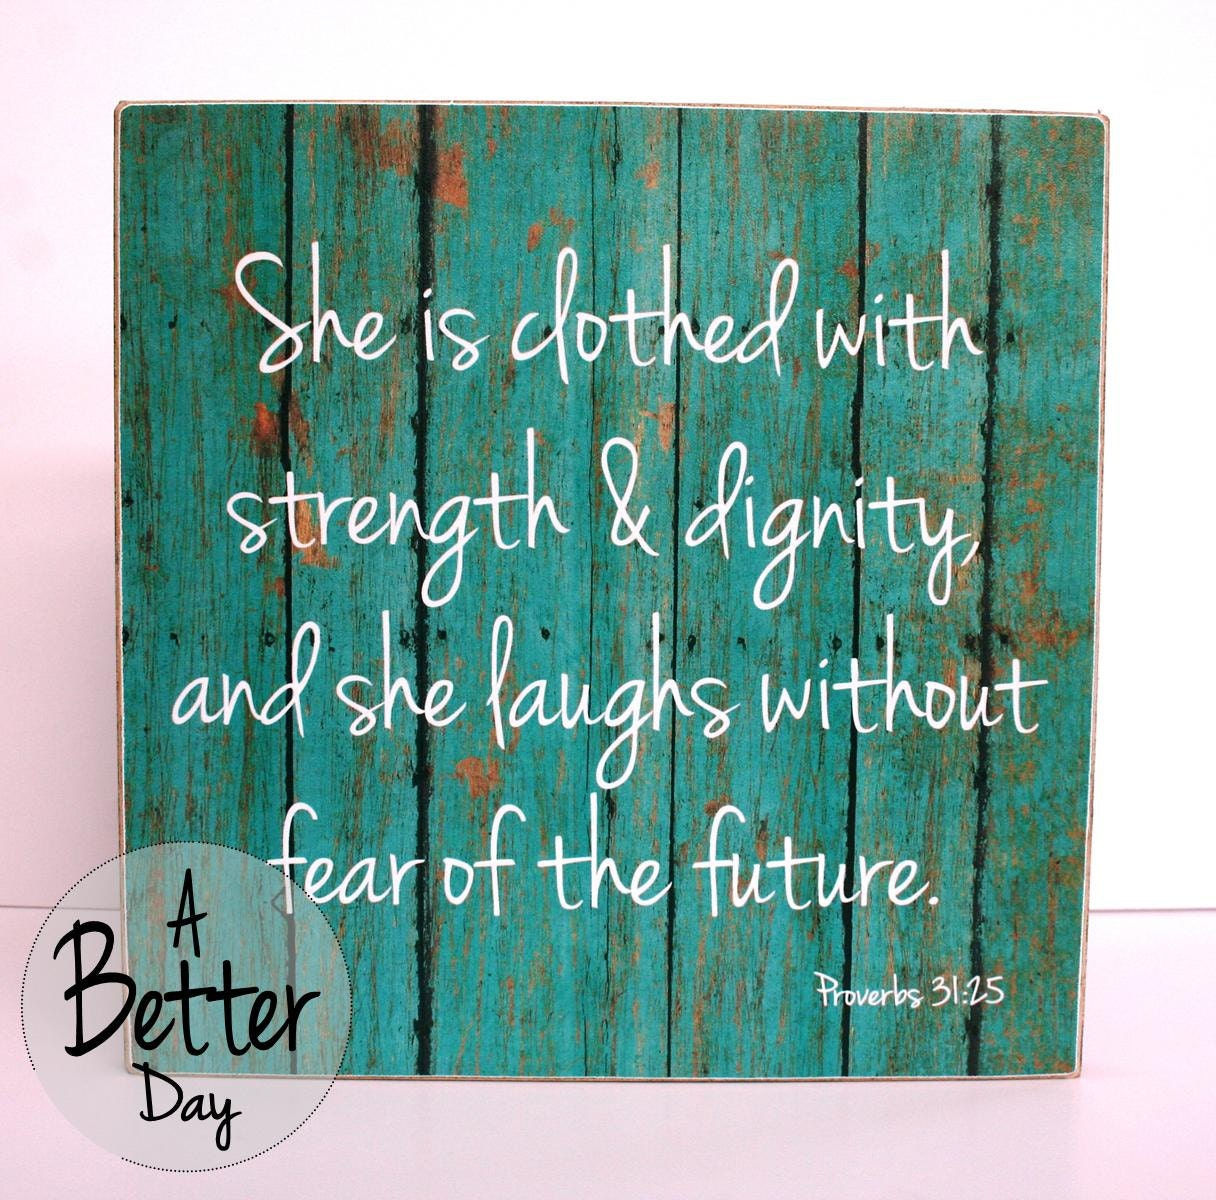 She Laughs Without Fear Of The Future: 12x12 Hanging Sign With Proverbs 31:25 She Is By ABetterDay